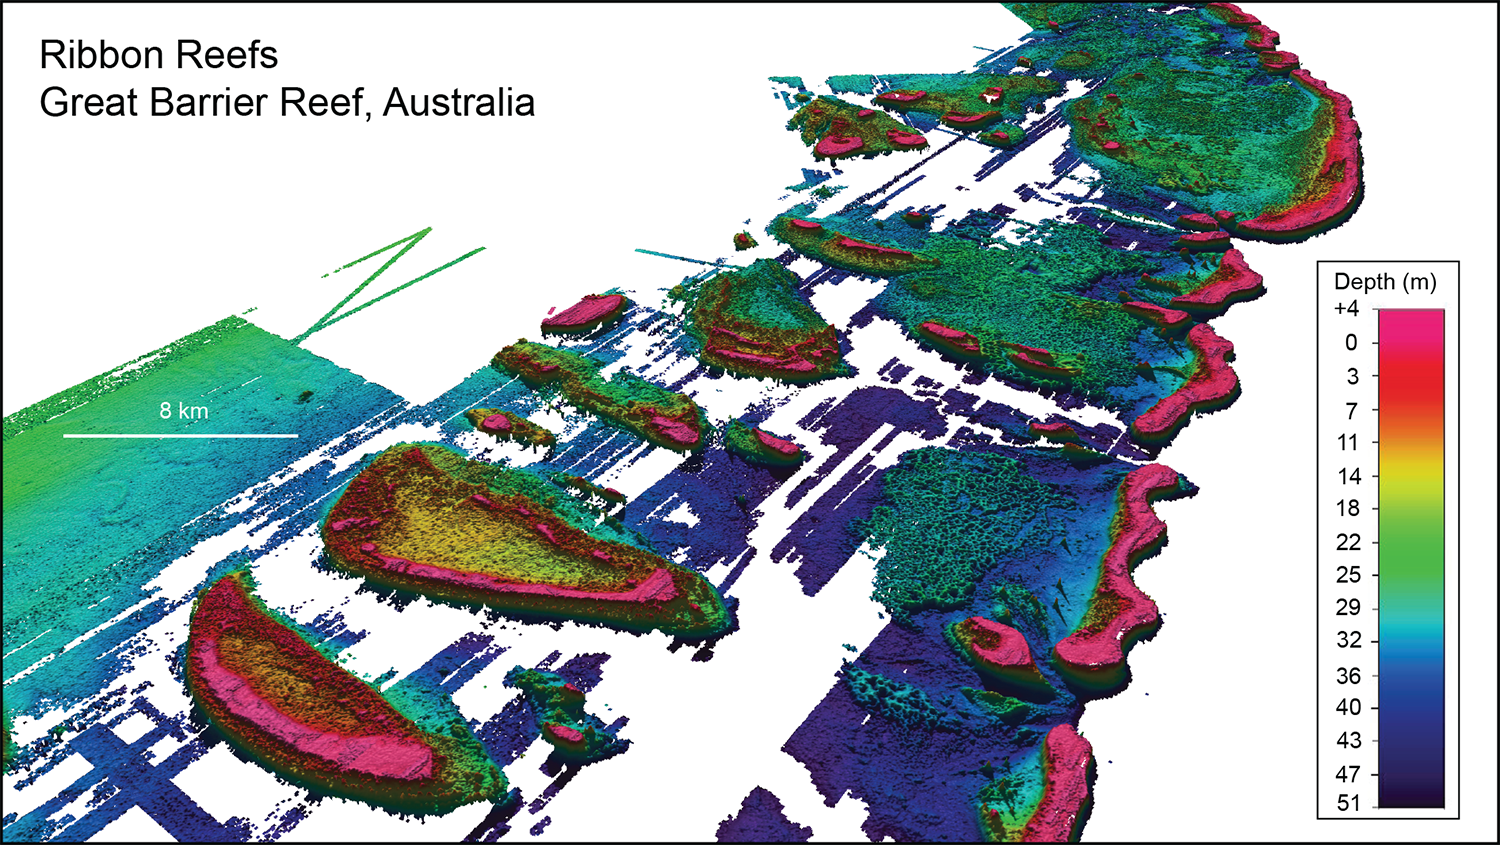 Lidar mapped Ribbon Reefs in the northern Great Barrier Reef, Australia. The gaps in data coverage are inter-reefal areas where seabed depths lie greater than about 50 m, the limits of laser penetration into the water column. Grid pixel resolution is 25 m. Total grid distance is about 110 km